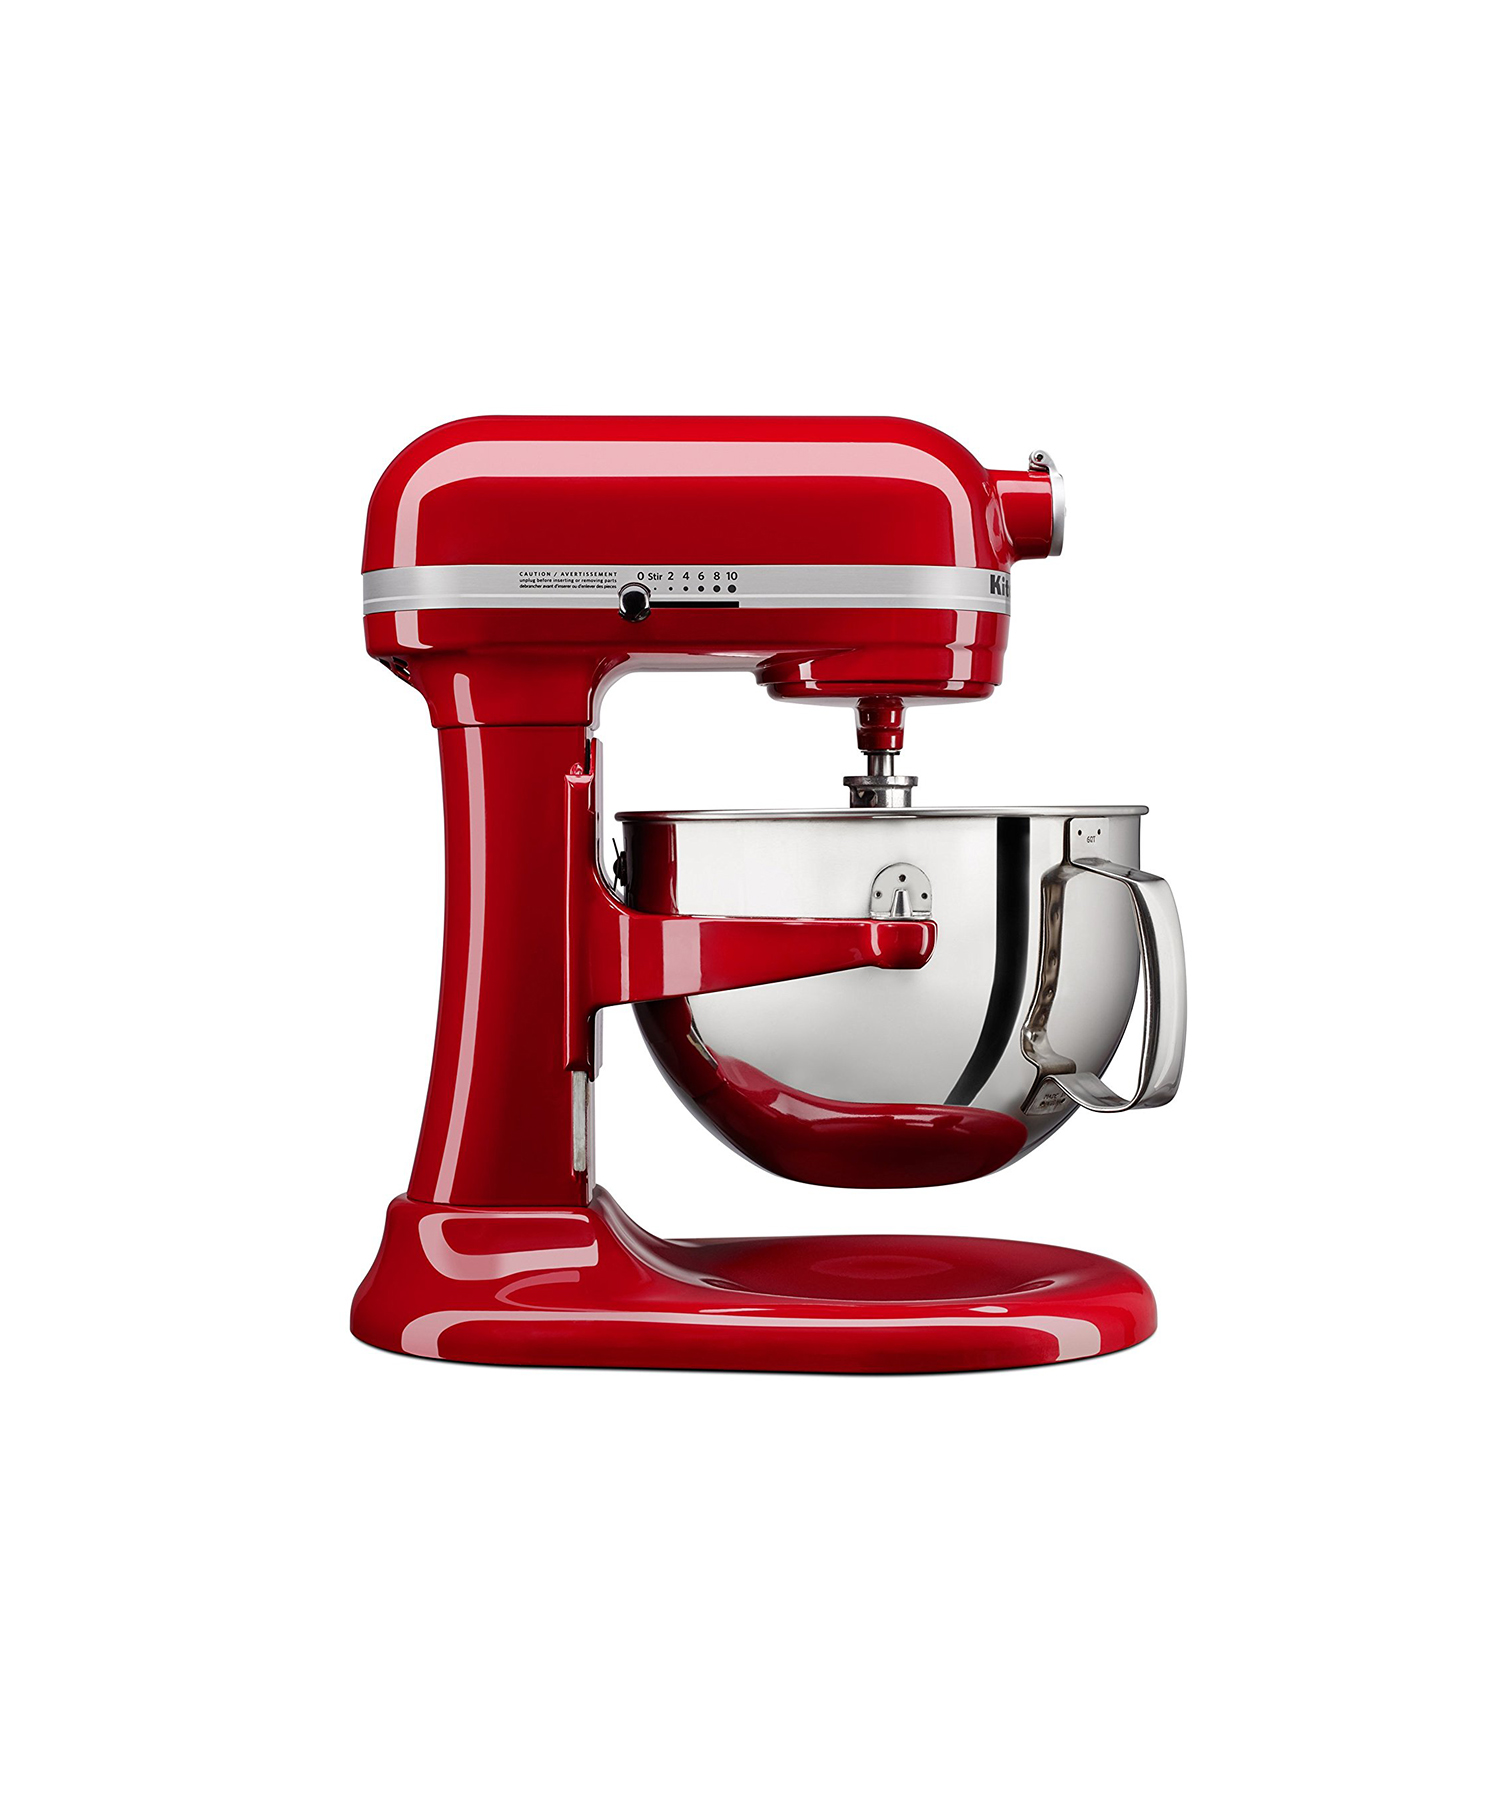 Superb Amazons Super Cheap Deal On Kitchenaid Stand Mixers Real Interior Design Ideas Lukepblogthenellocom